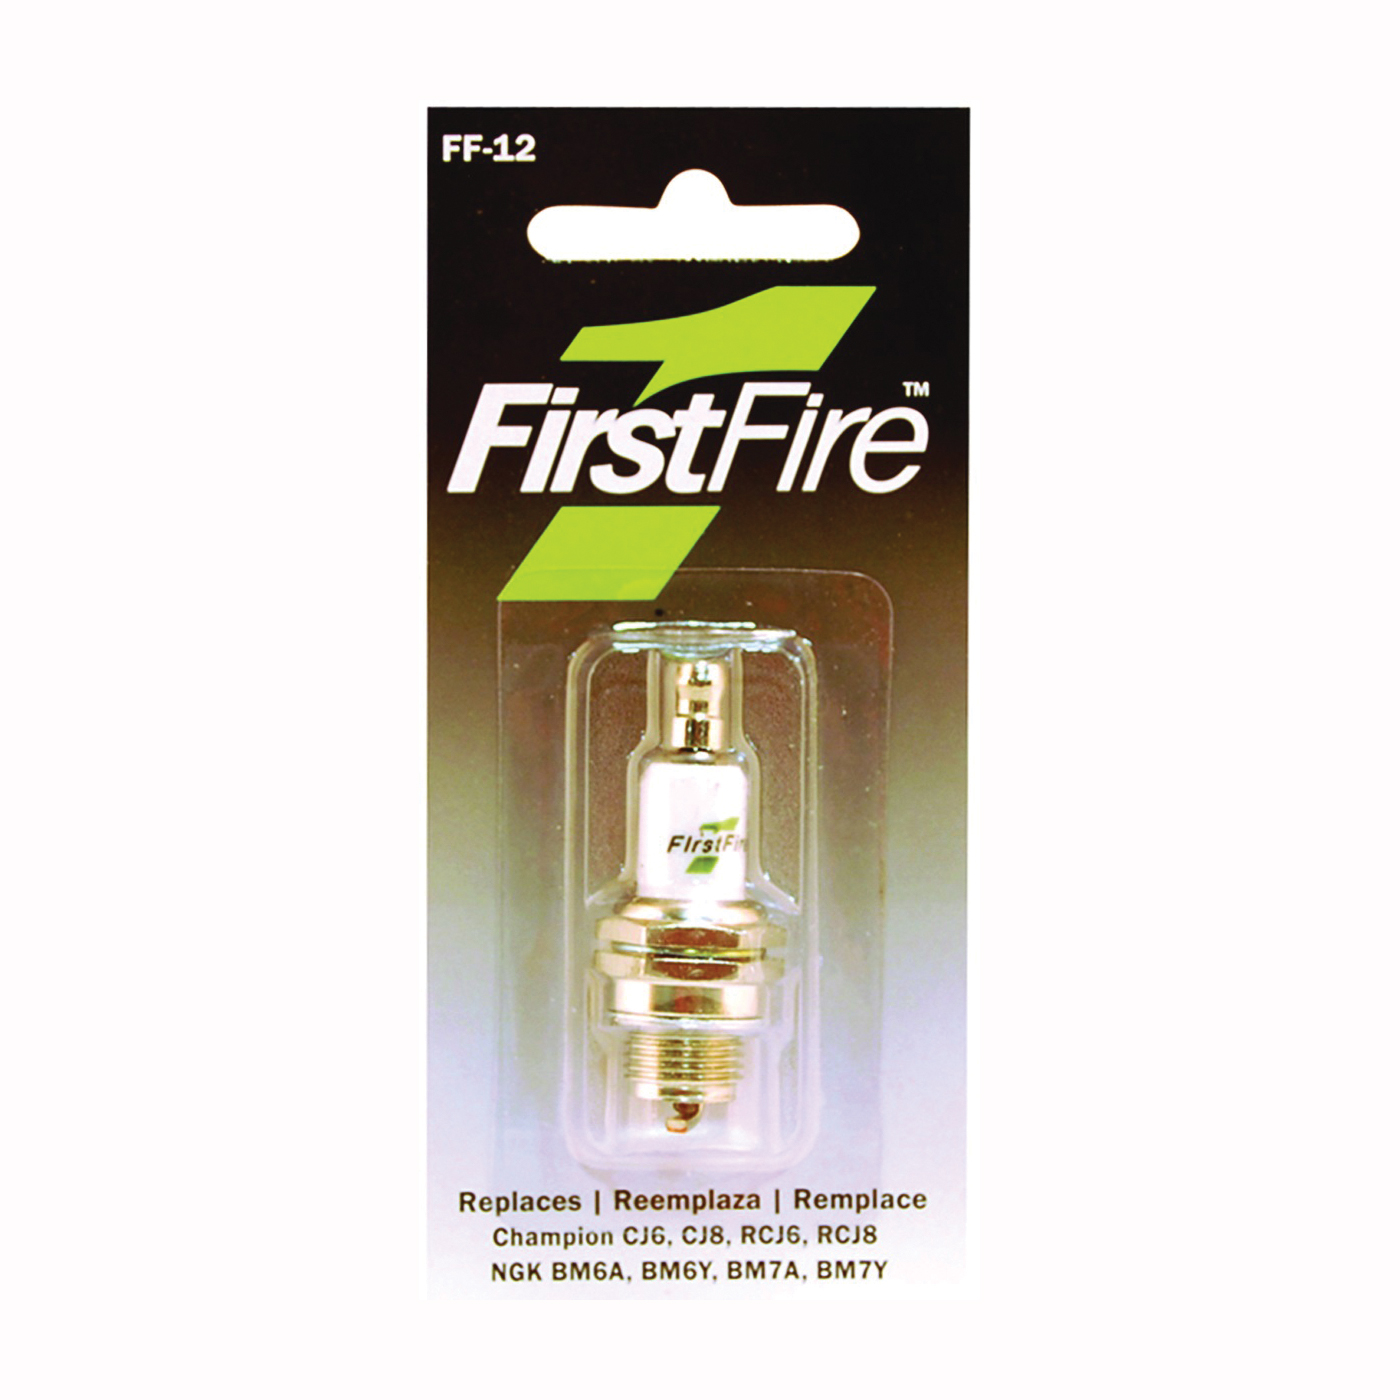 Picture of MTD FF-12 Spark Plug, 3/8 in Fill Gap, 0.551 in Thread, 13/16 in Hex